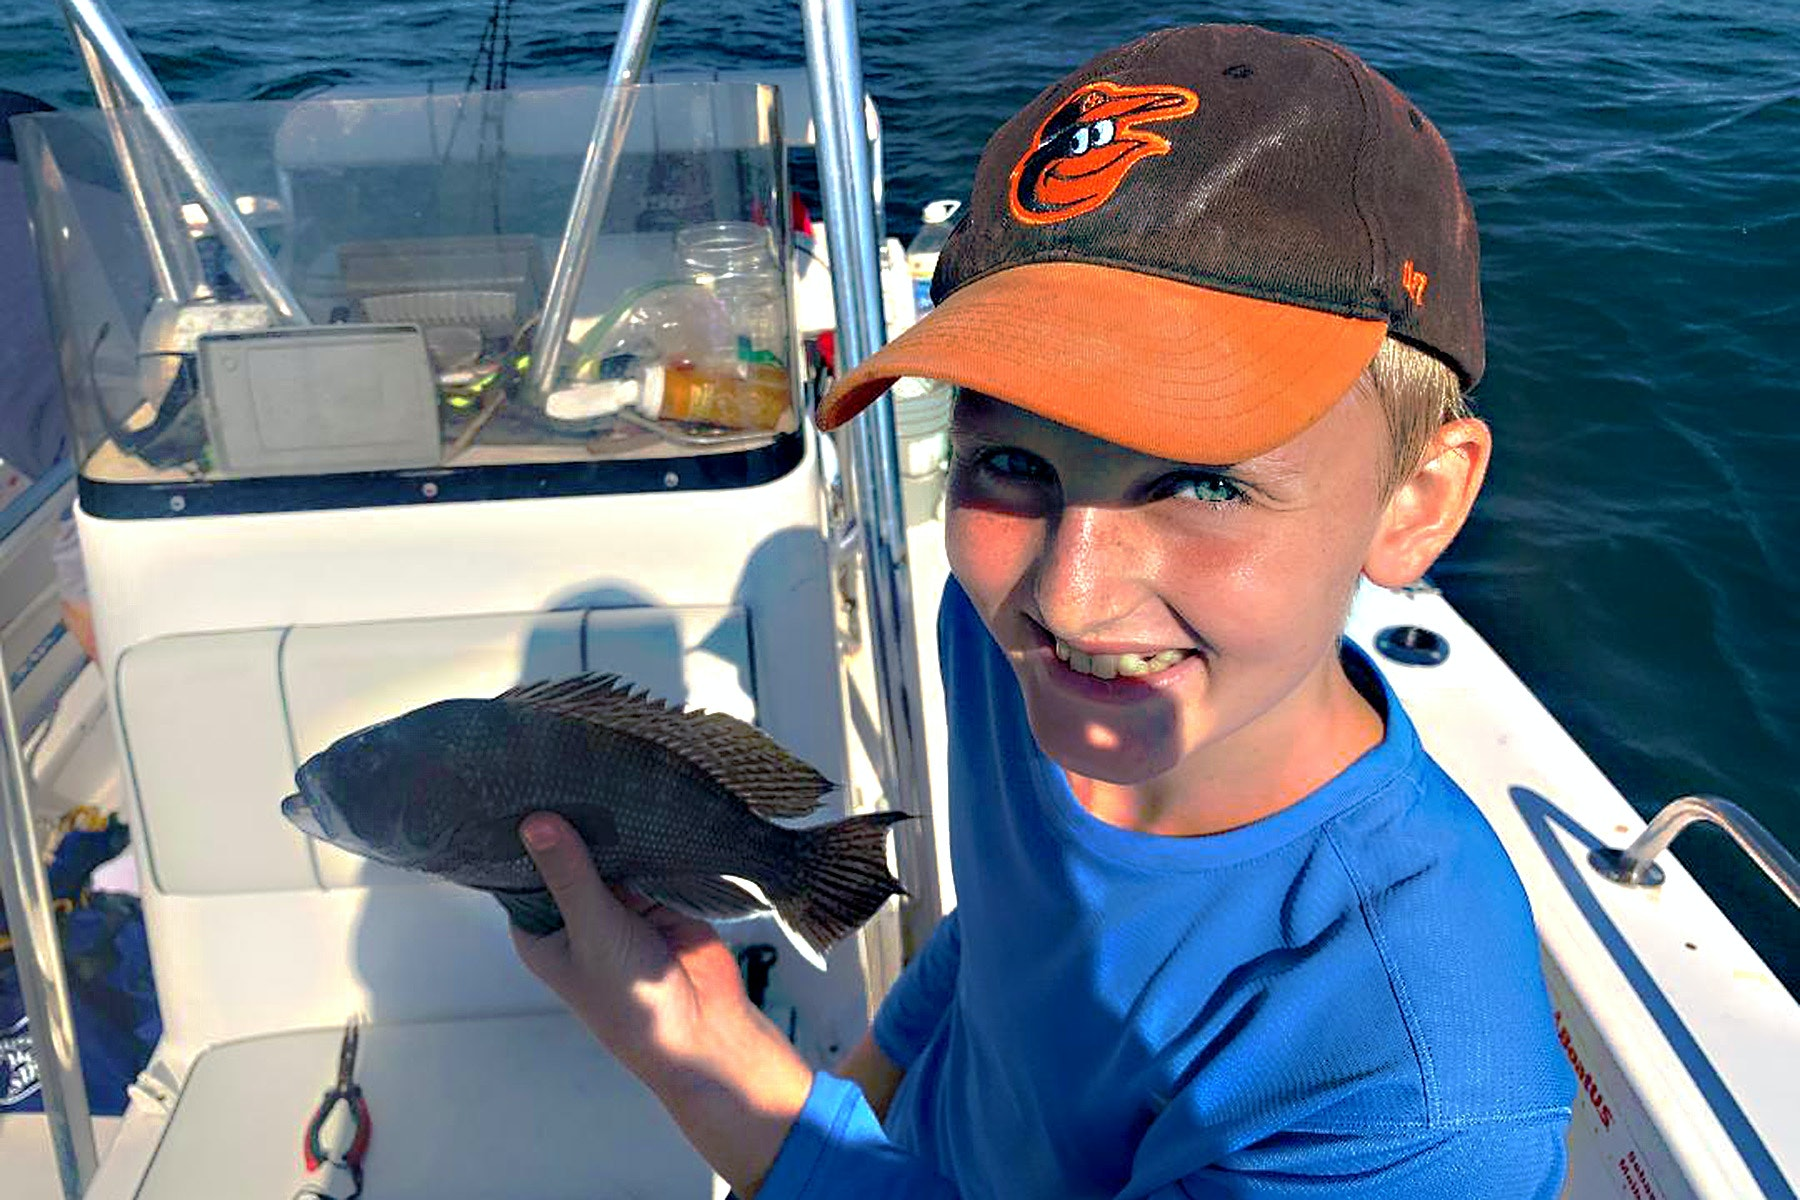 young boy in a ballcap holding a fish on a boat